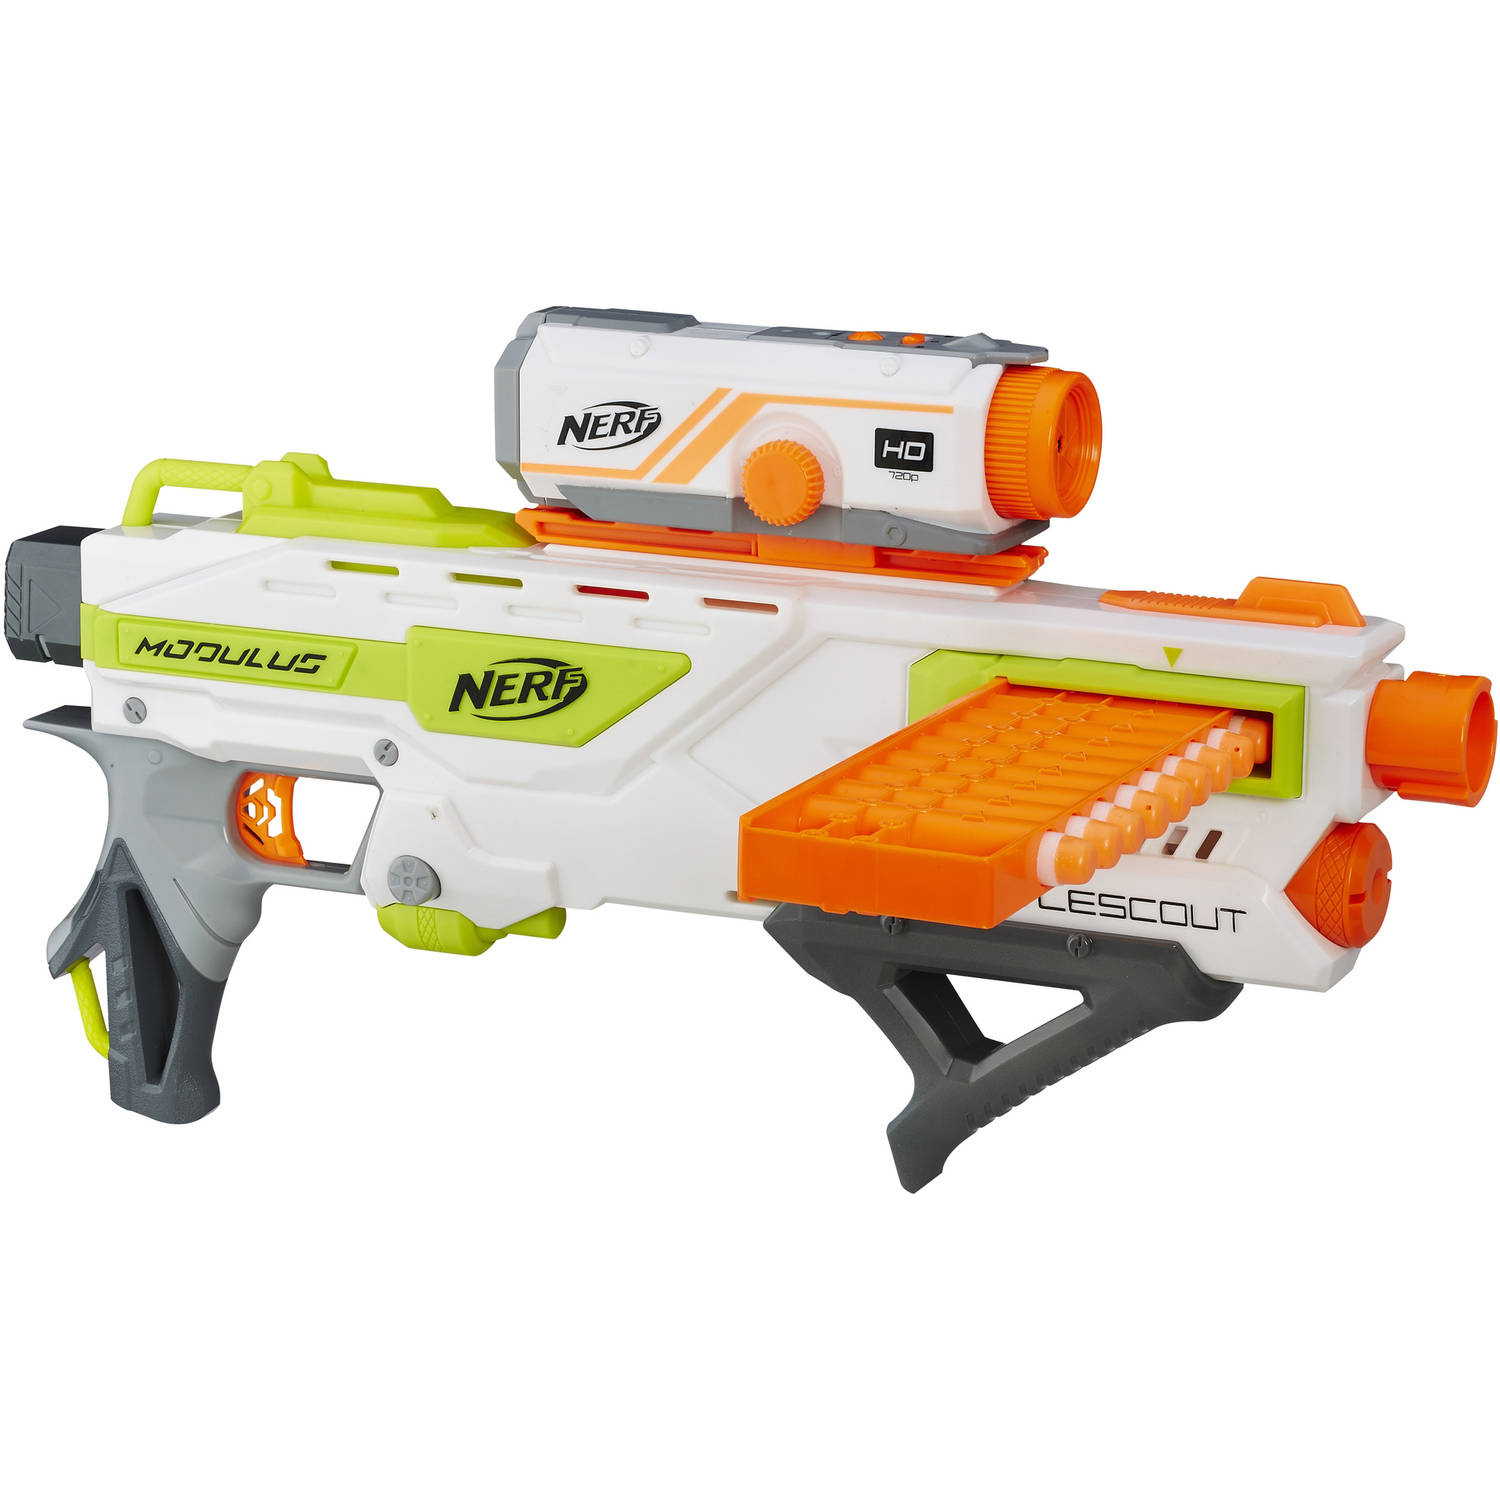 Nerf Modulus Recon Battlescout by Hasbro